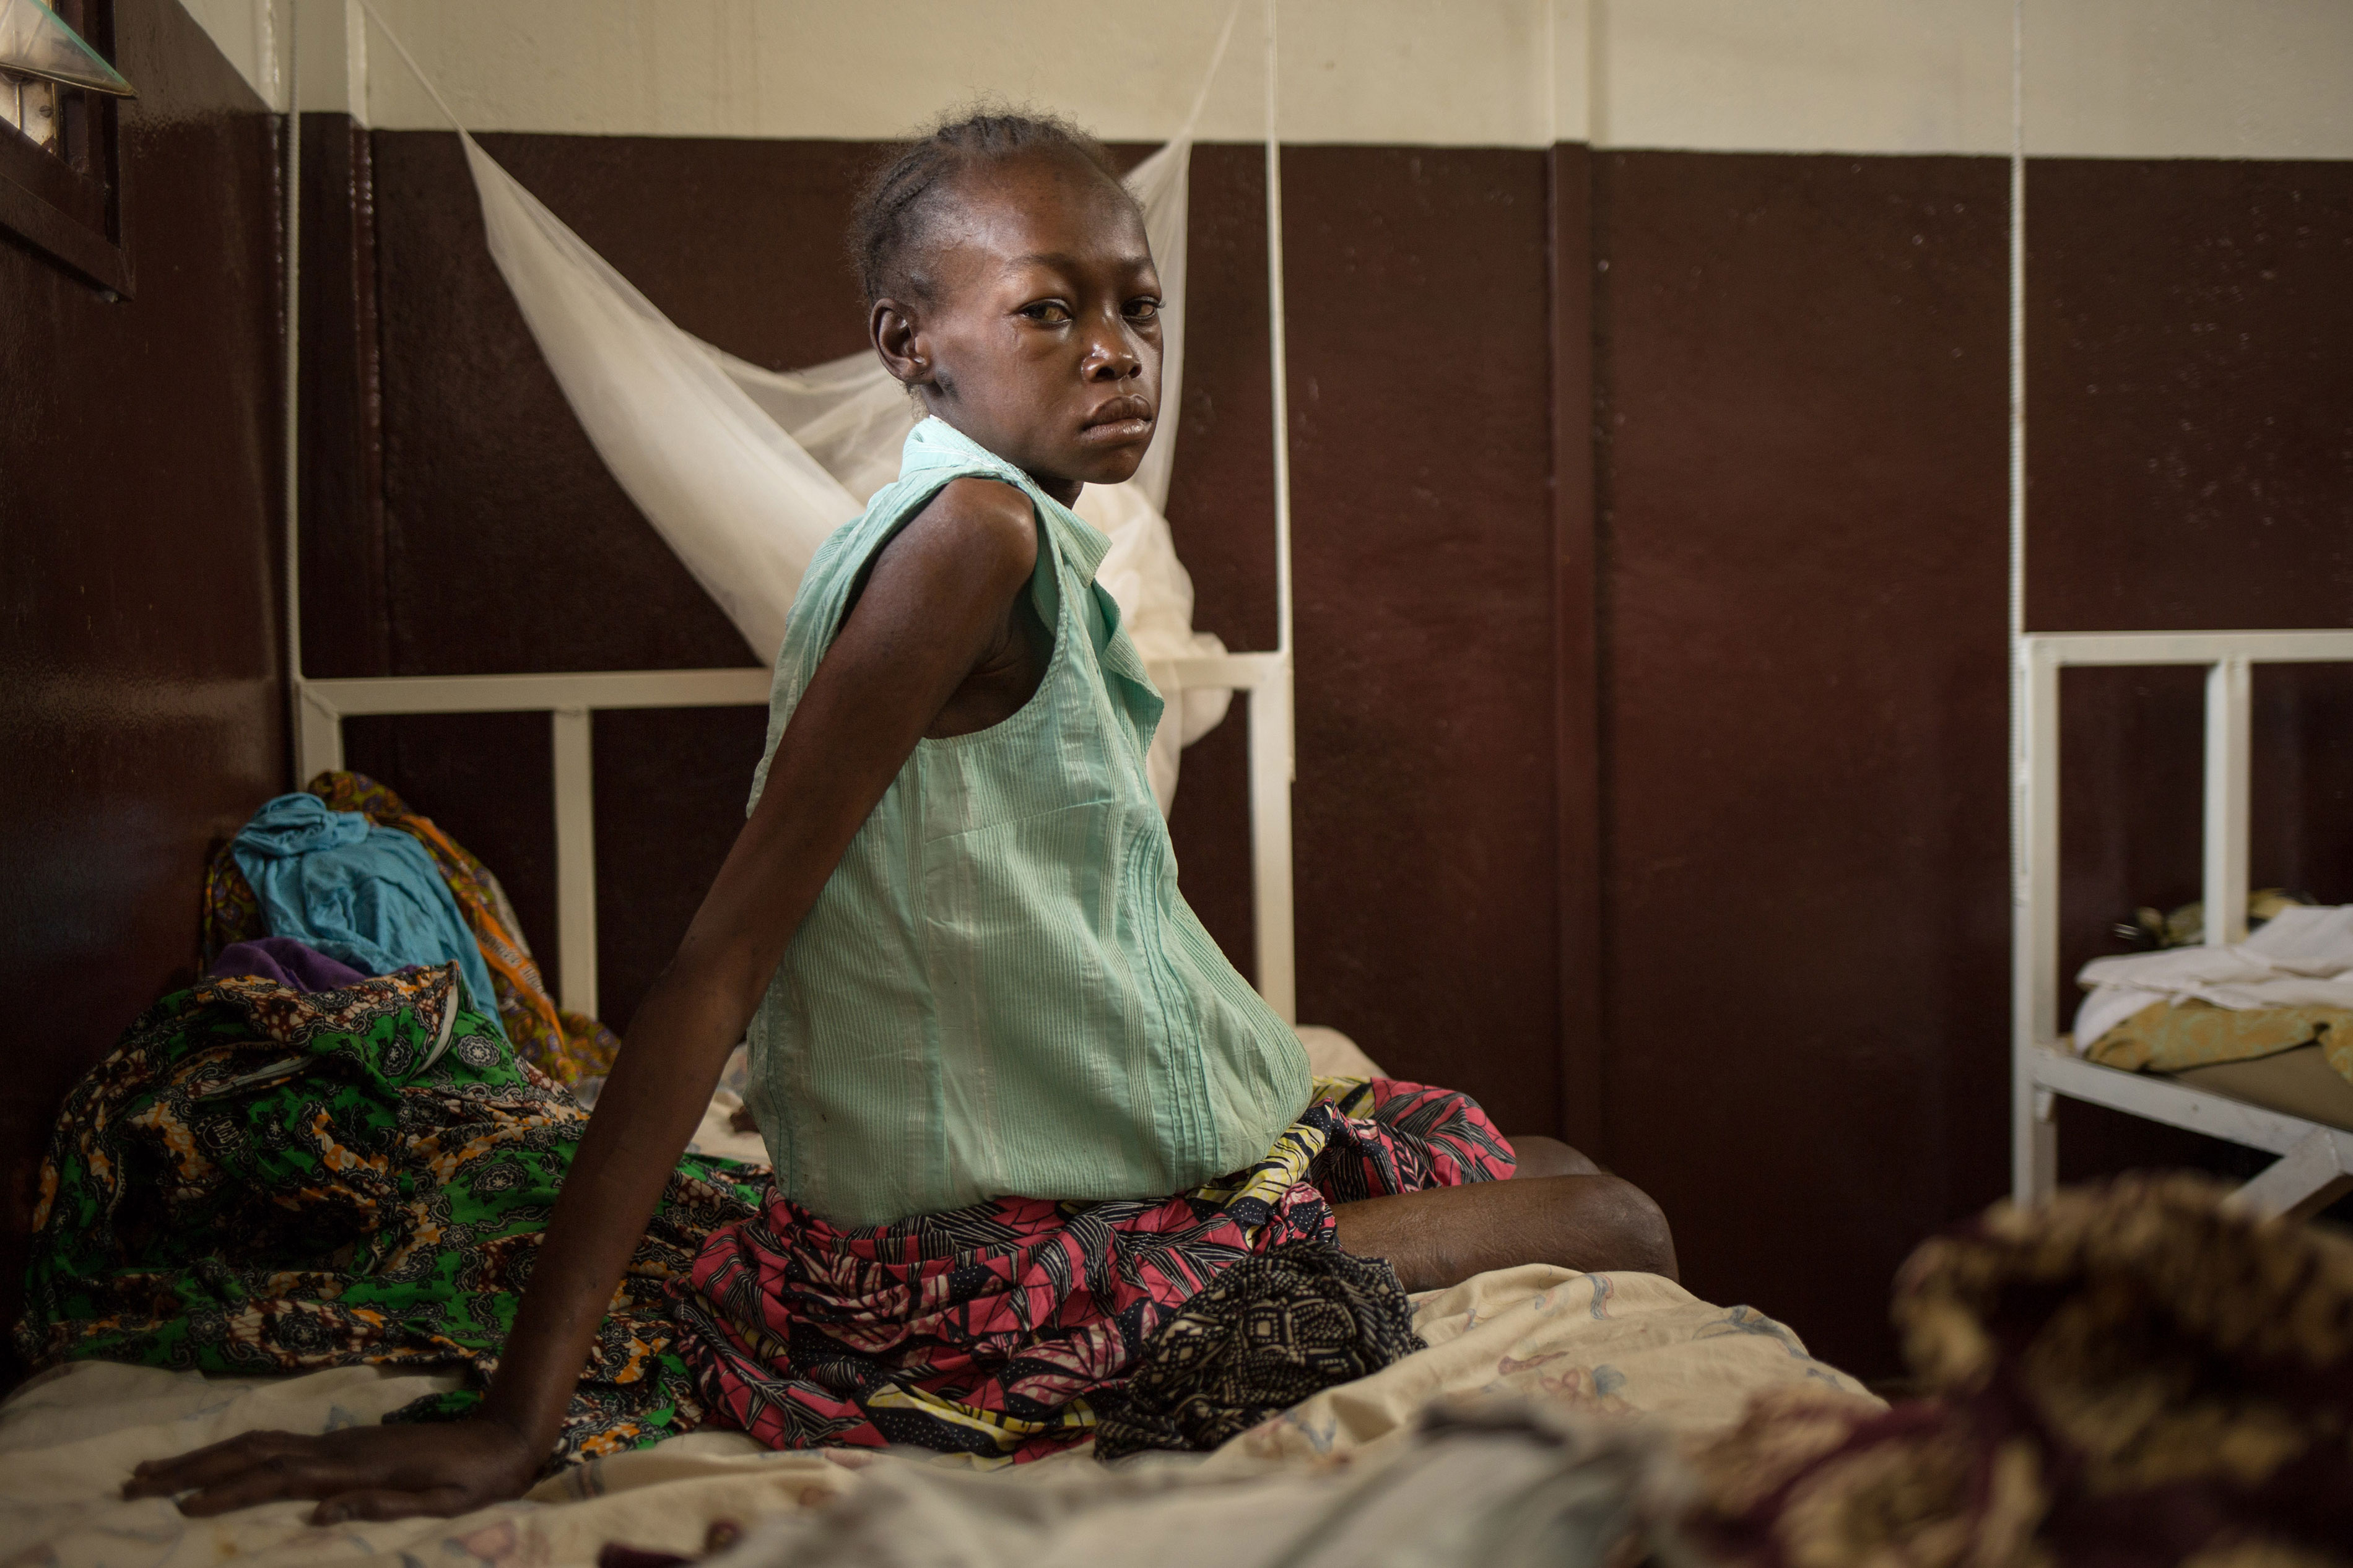 """I don't have money for medical treatment so I did not seek help for a long time."" Cynthia DOUNKEL, 26 years old, is hospitalized for the second time within a month in Hôpital communautaire in Bangui. She was referred from the MSF clinic in the displaced camp Mpoko at the airport of Bangui. She is HIV positive, has Tuberculosis and suffers from Kaposi's sarcoma. She is three months pregnant. 09 July 2016 - Hôpital communautaire, Bangui, Central African Republic. Photograph by Alexis Huguet"